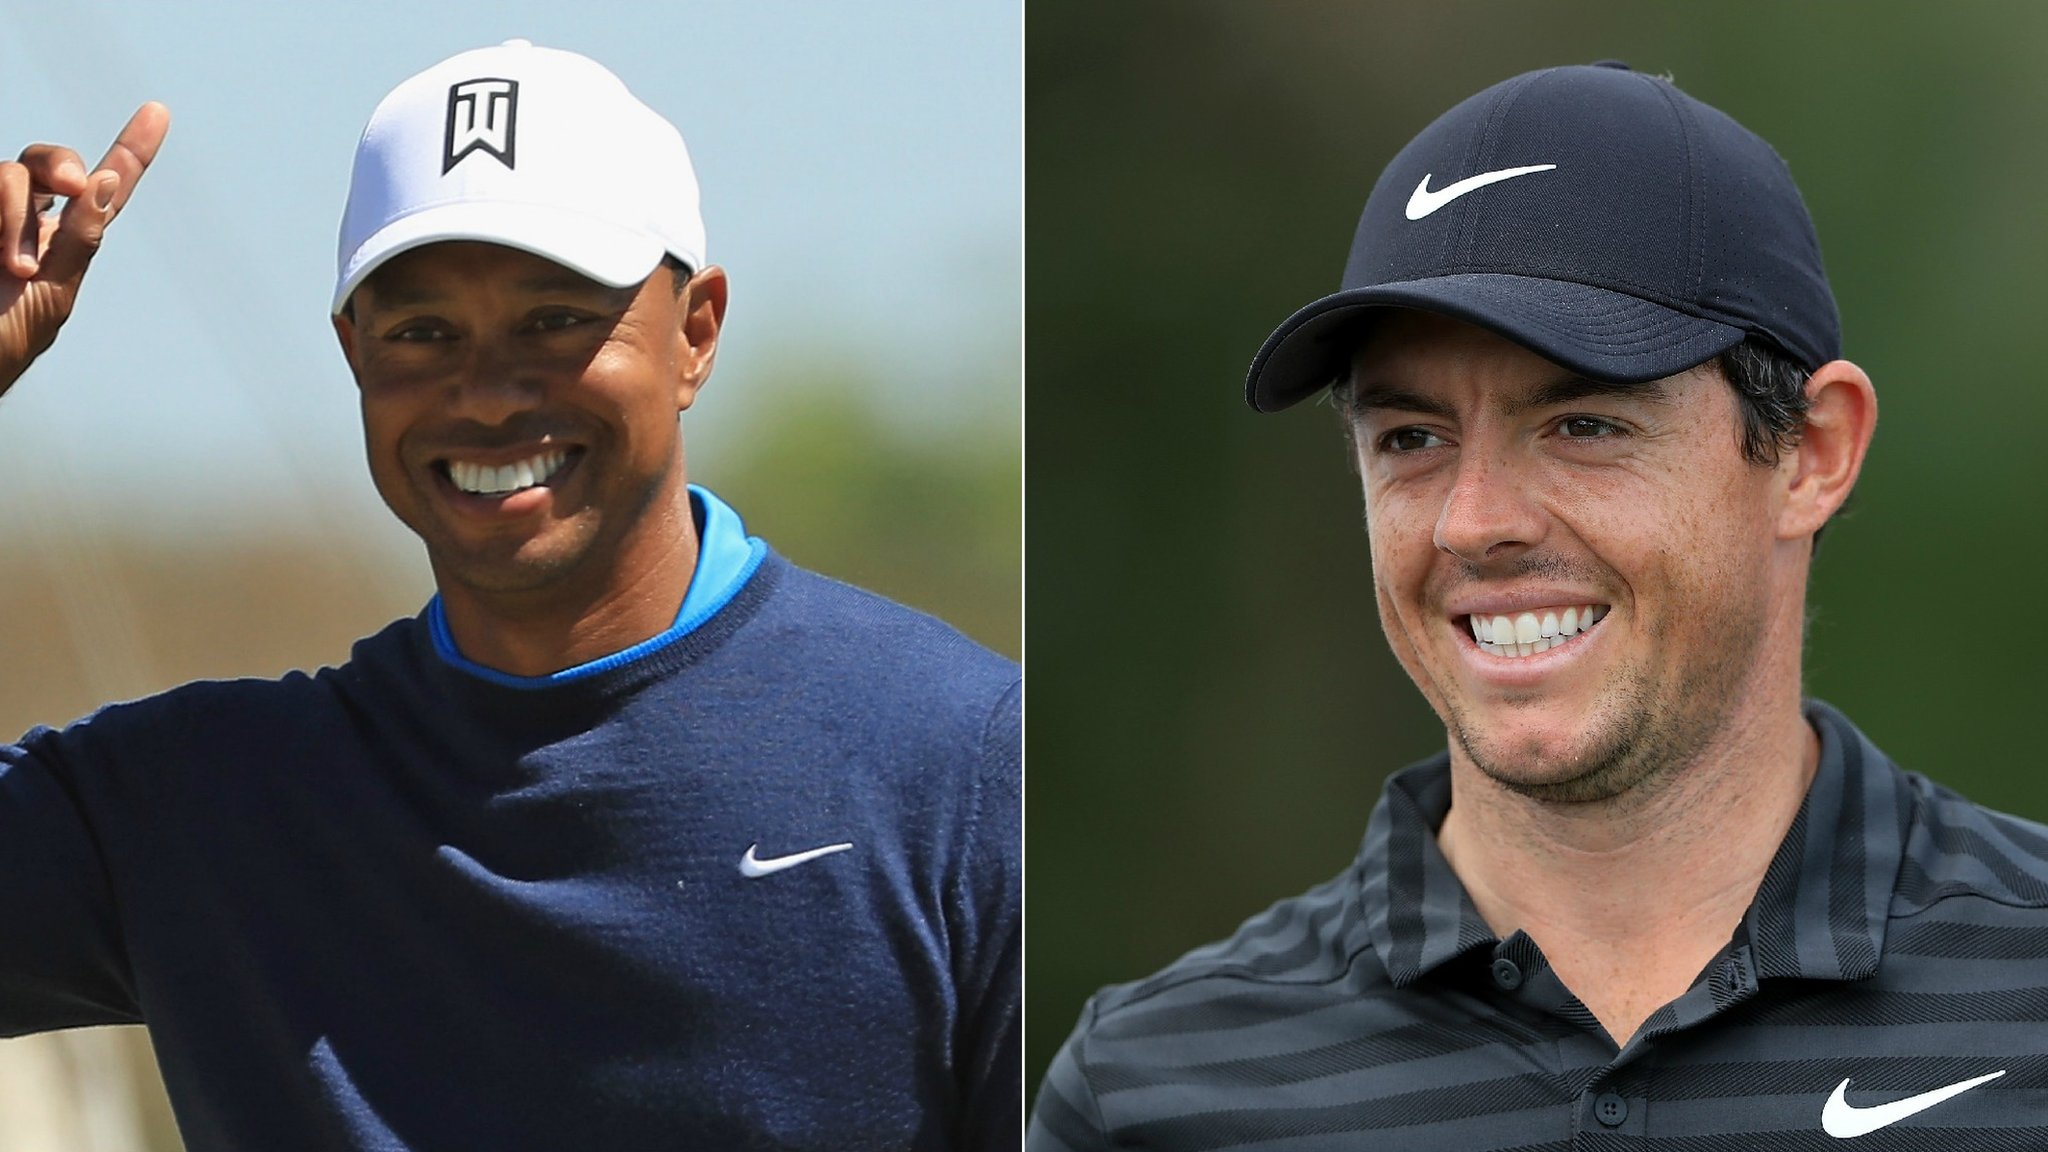 Tiger Woods & Rory McIlroy in contention at Arnold Palmer Invitational